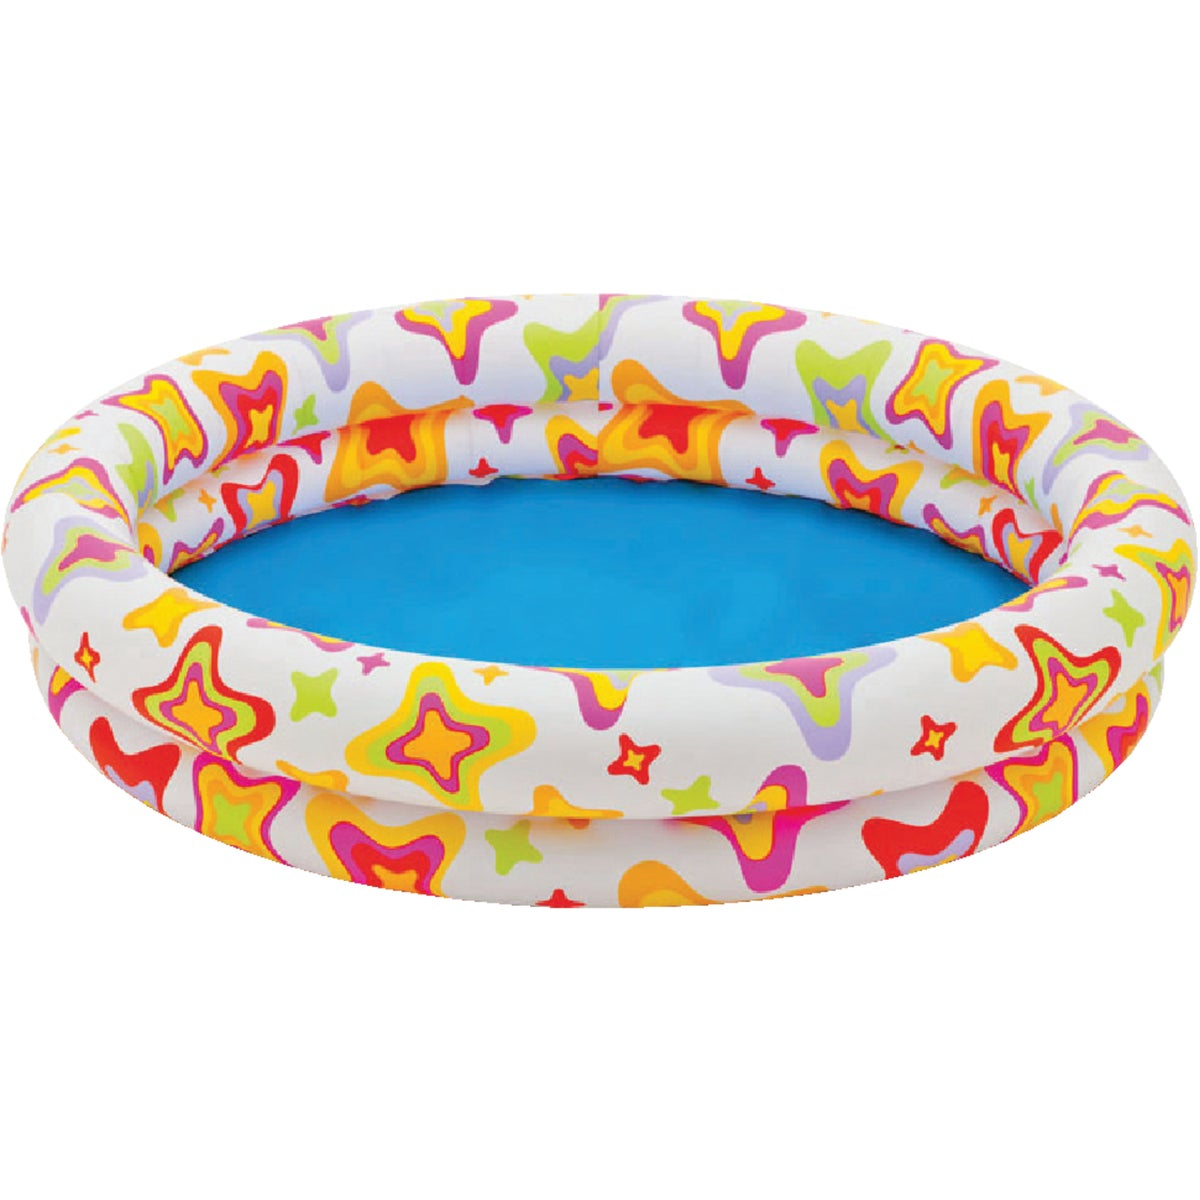 48X10 STARS POOL - 59421EP by Intex Recreation